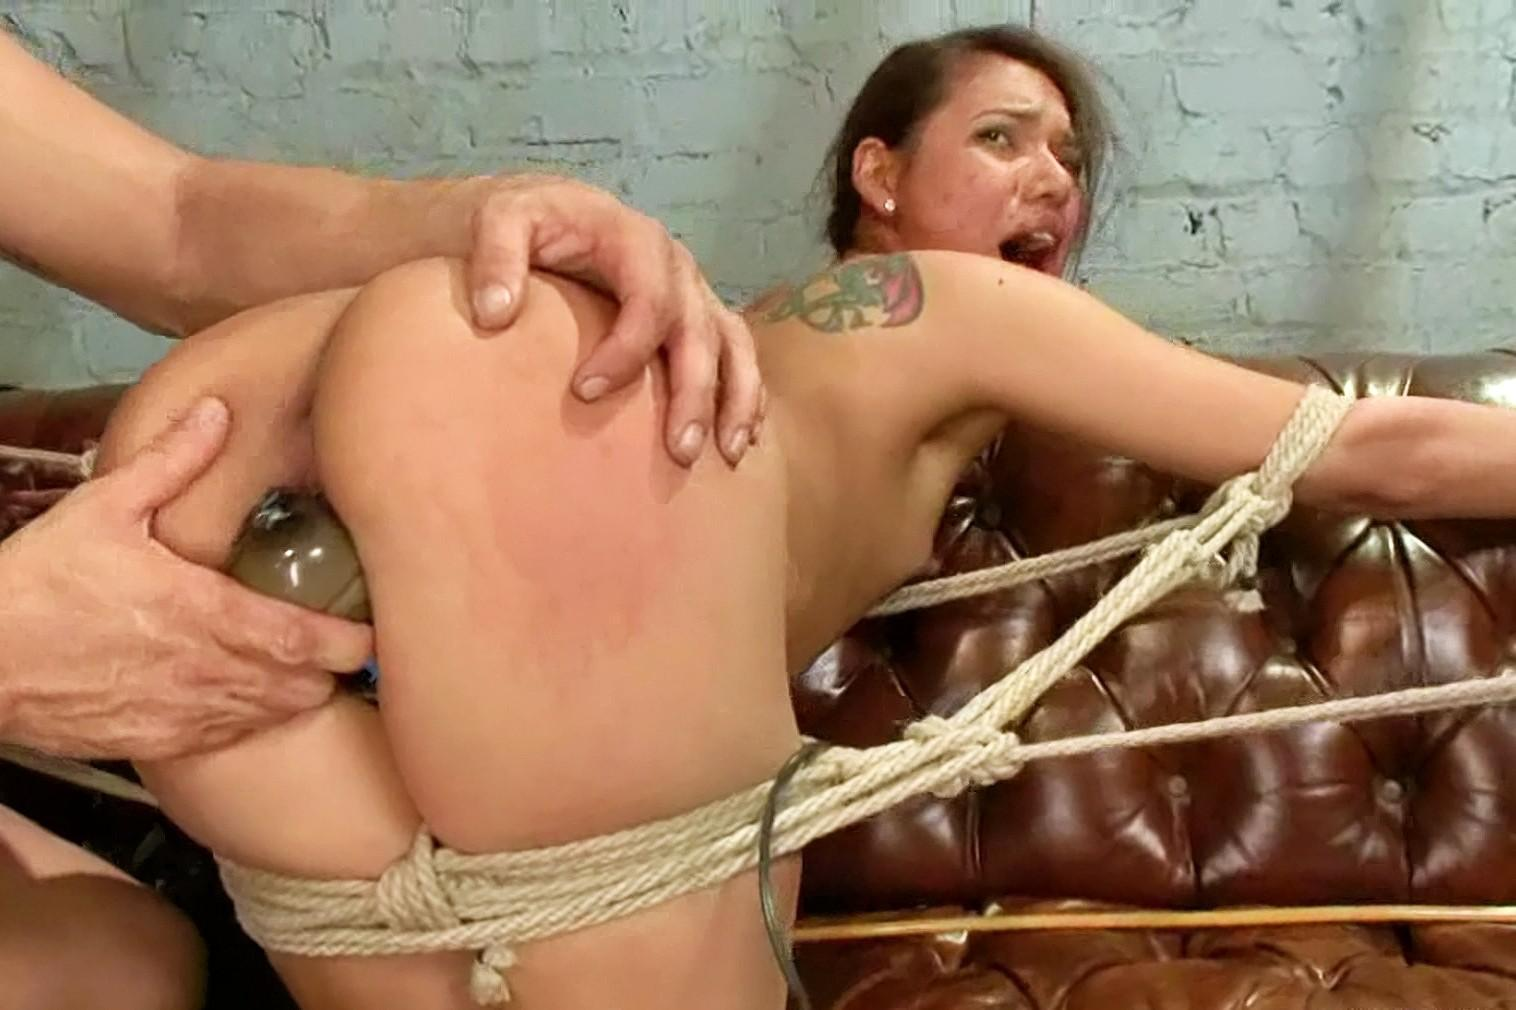 Black woman in bondage and Dominant ethnic group